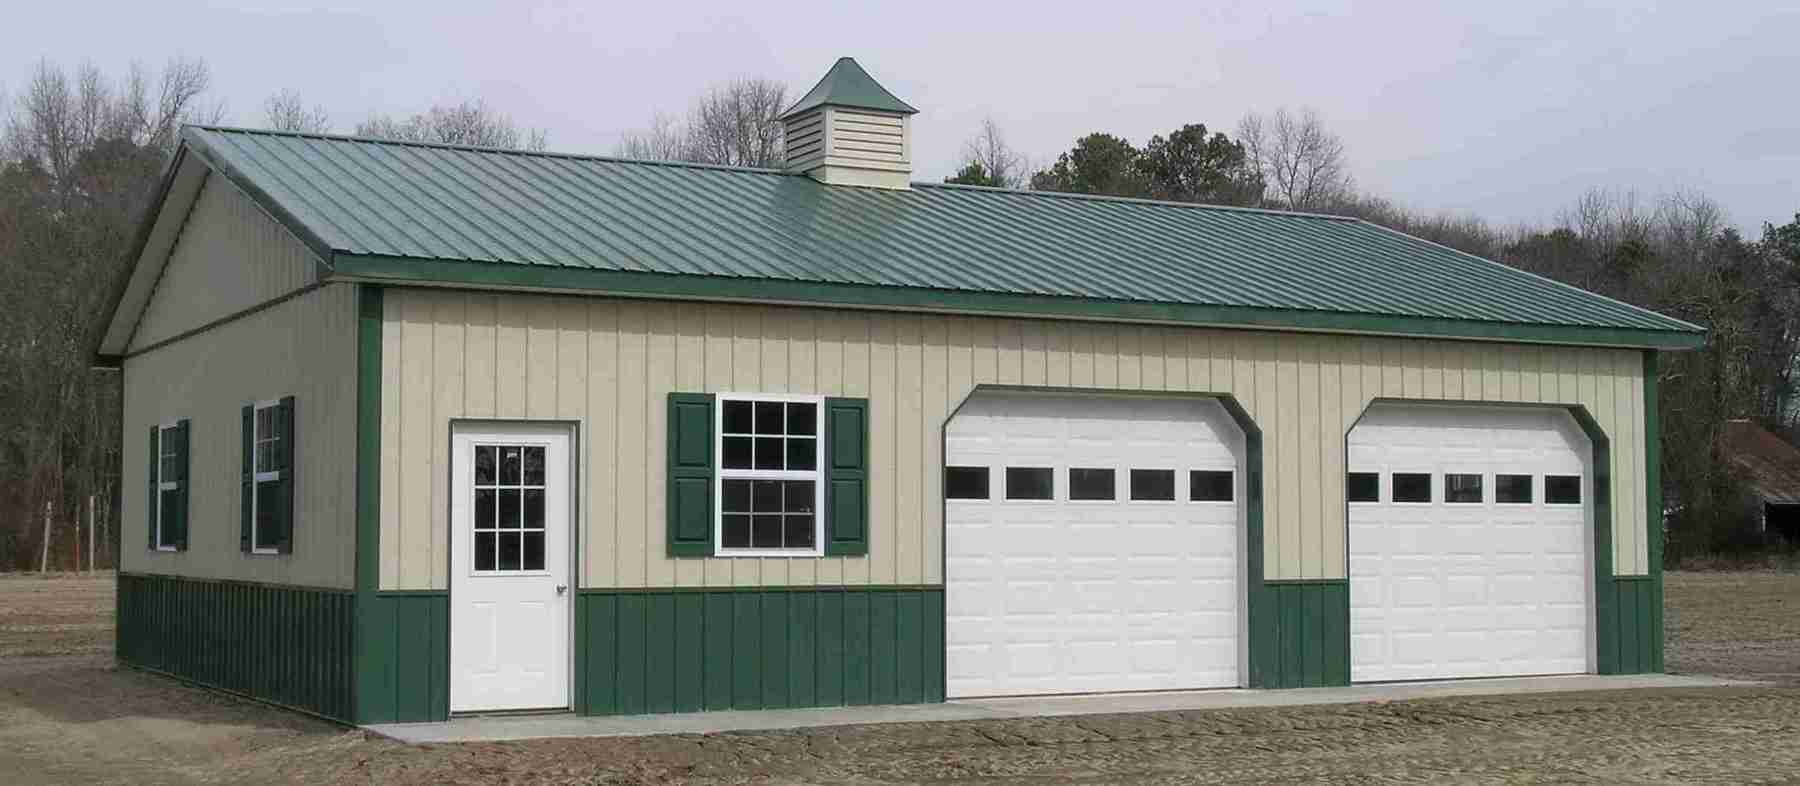 Pole barn garage kits 101 metal building homes for Metal pole barn homes plans